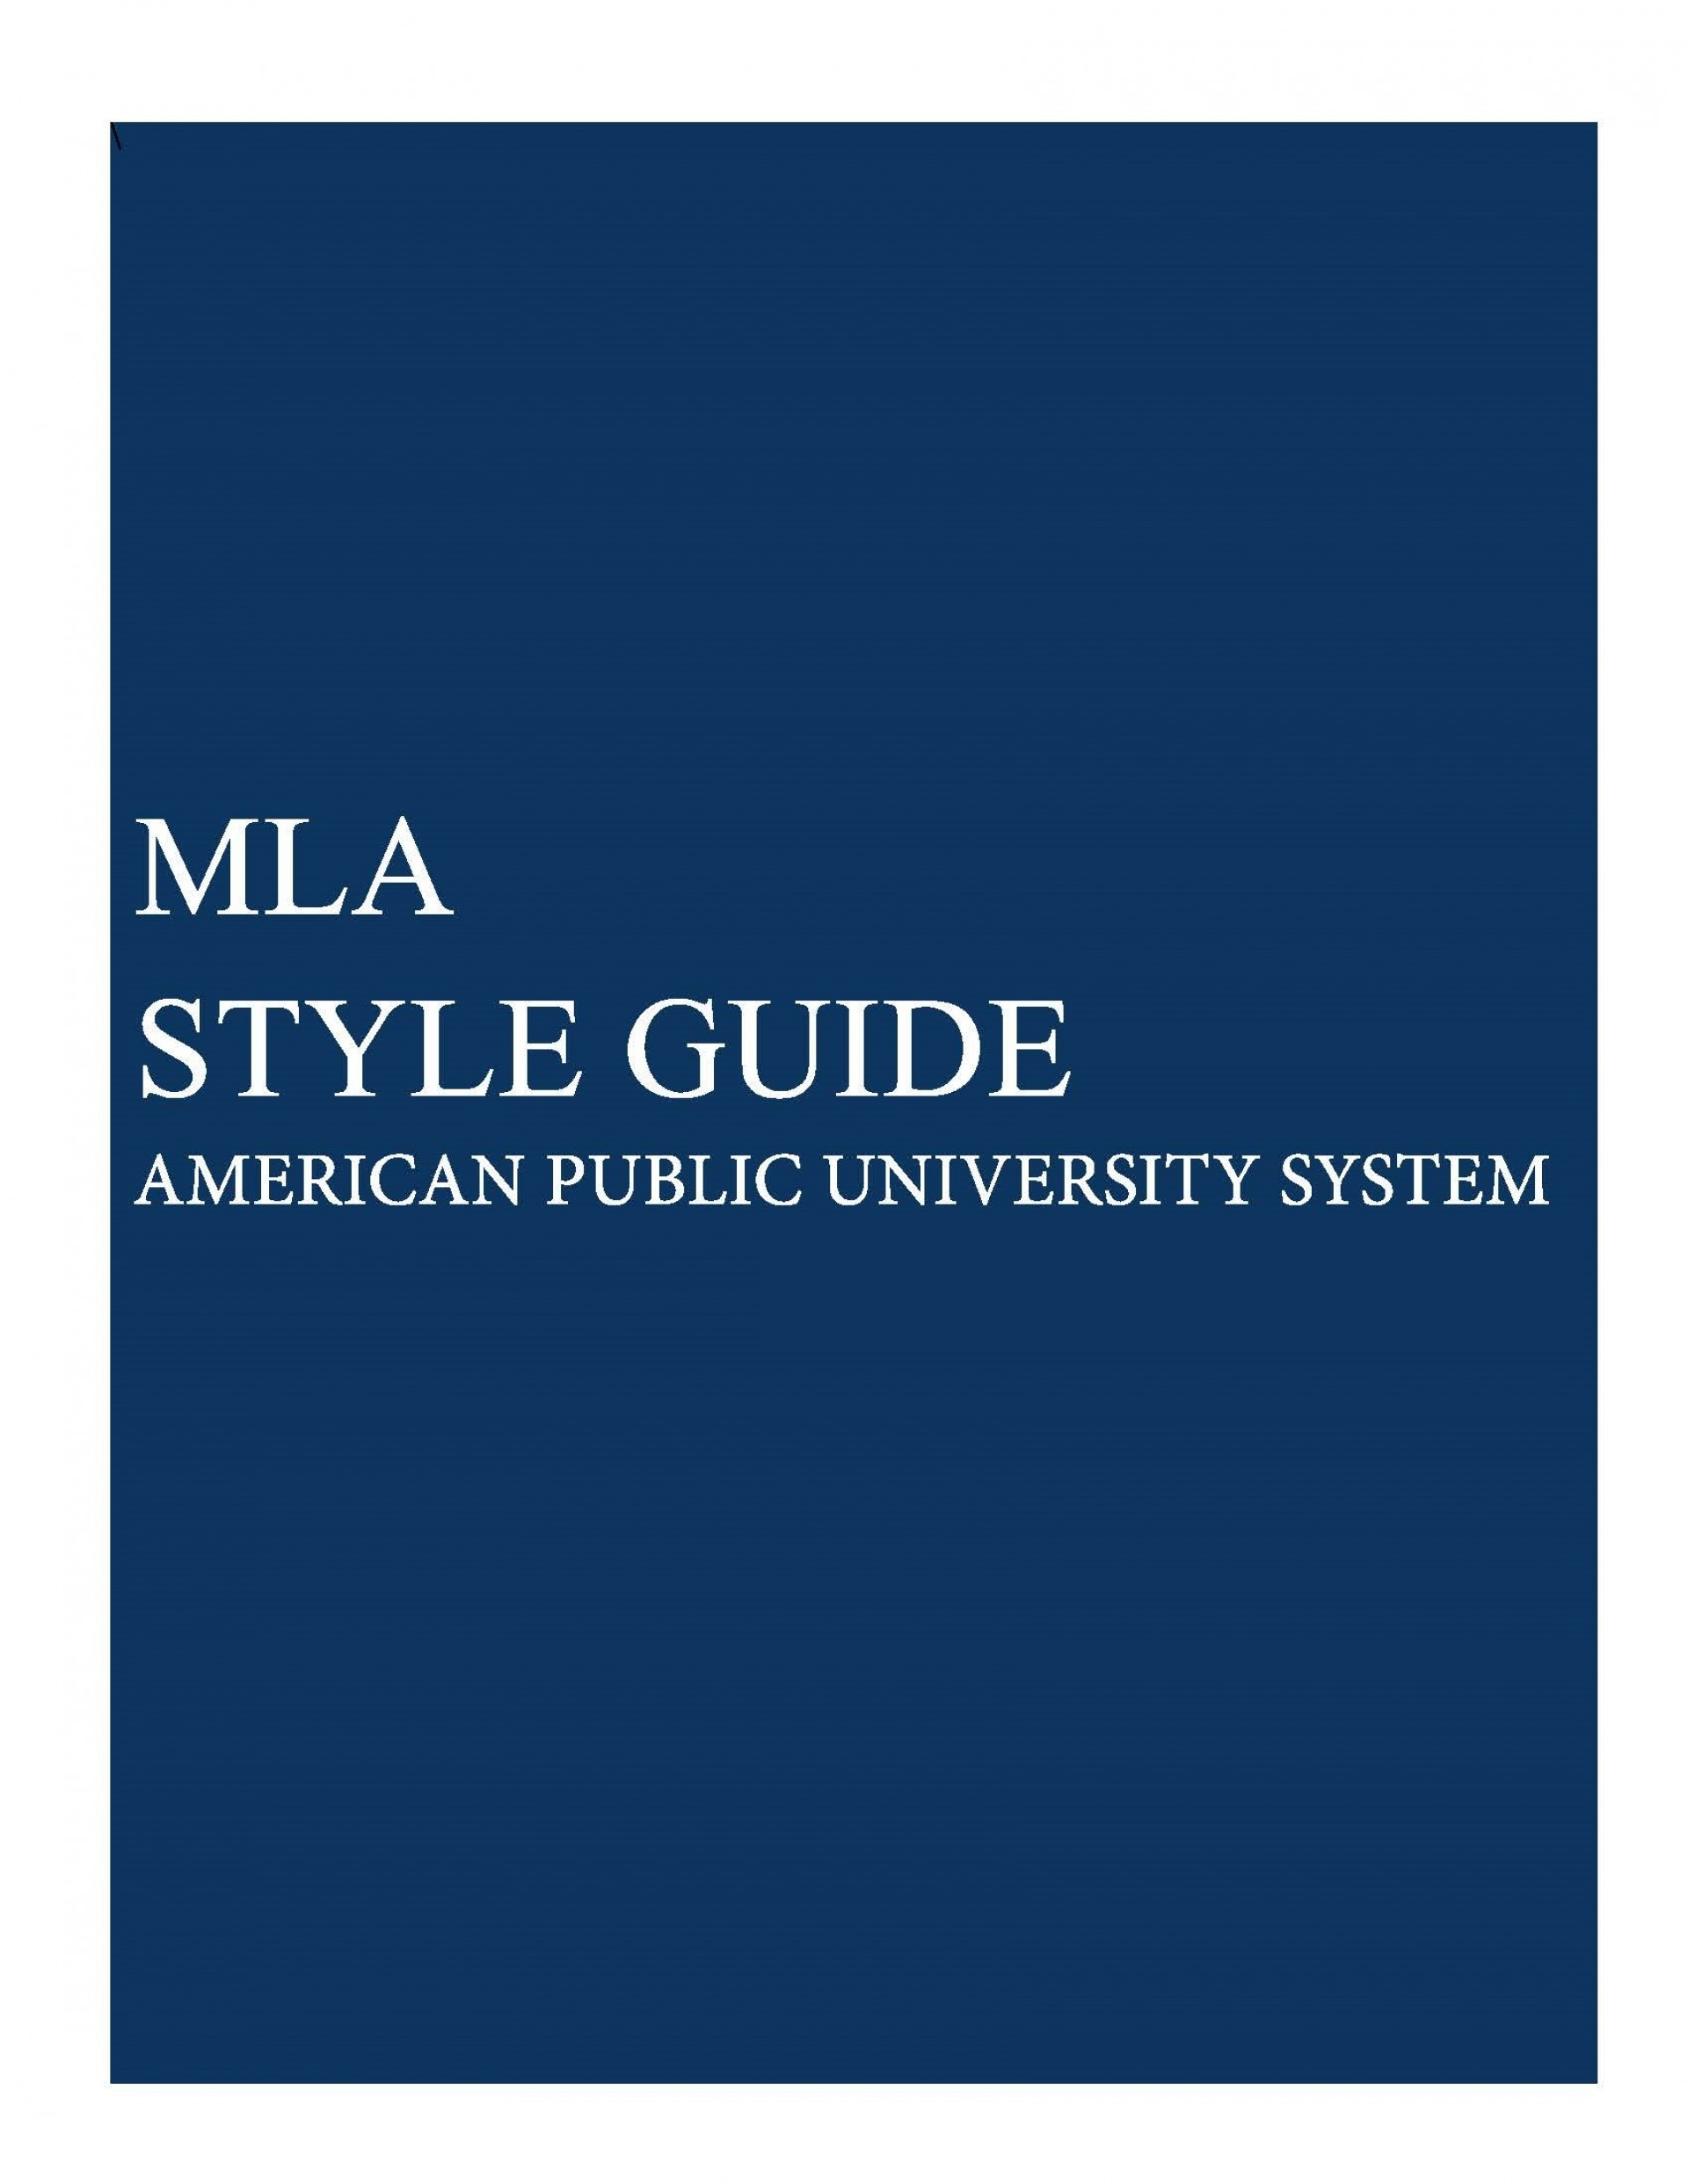 008 Research Paper Mla Handbook For Writers Of Papers 8th Edition Cover Edited Unique Pdf Free Download 1920